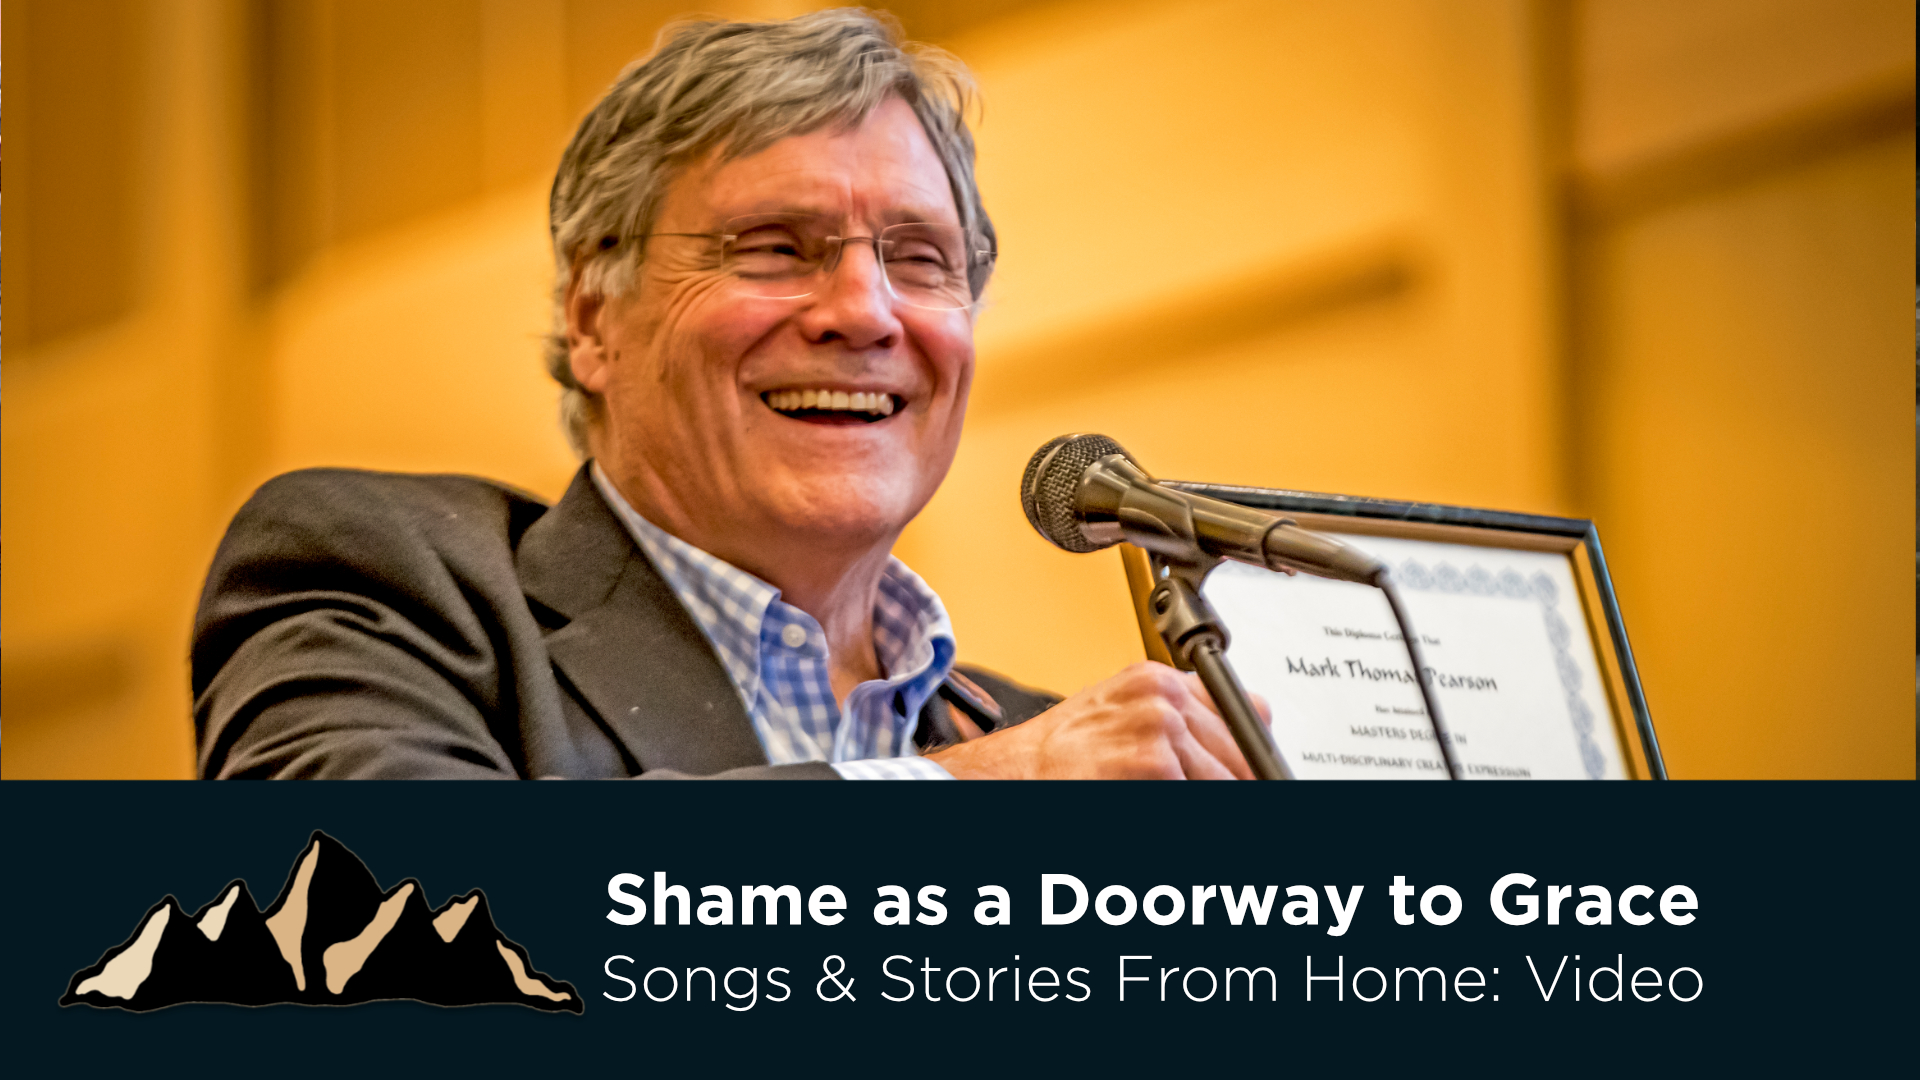 Graduation Celebration - Shame as a doorway to grace ~ Songs & Stories From Home Episode 10 ~ Mark Pearson Music